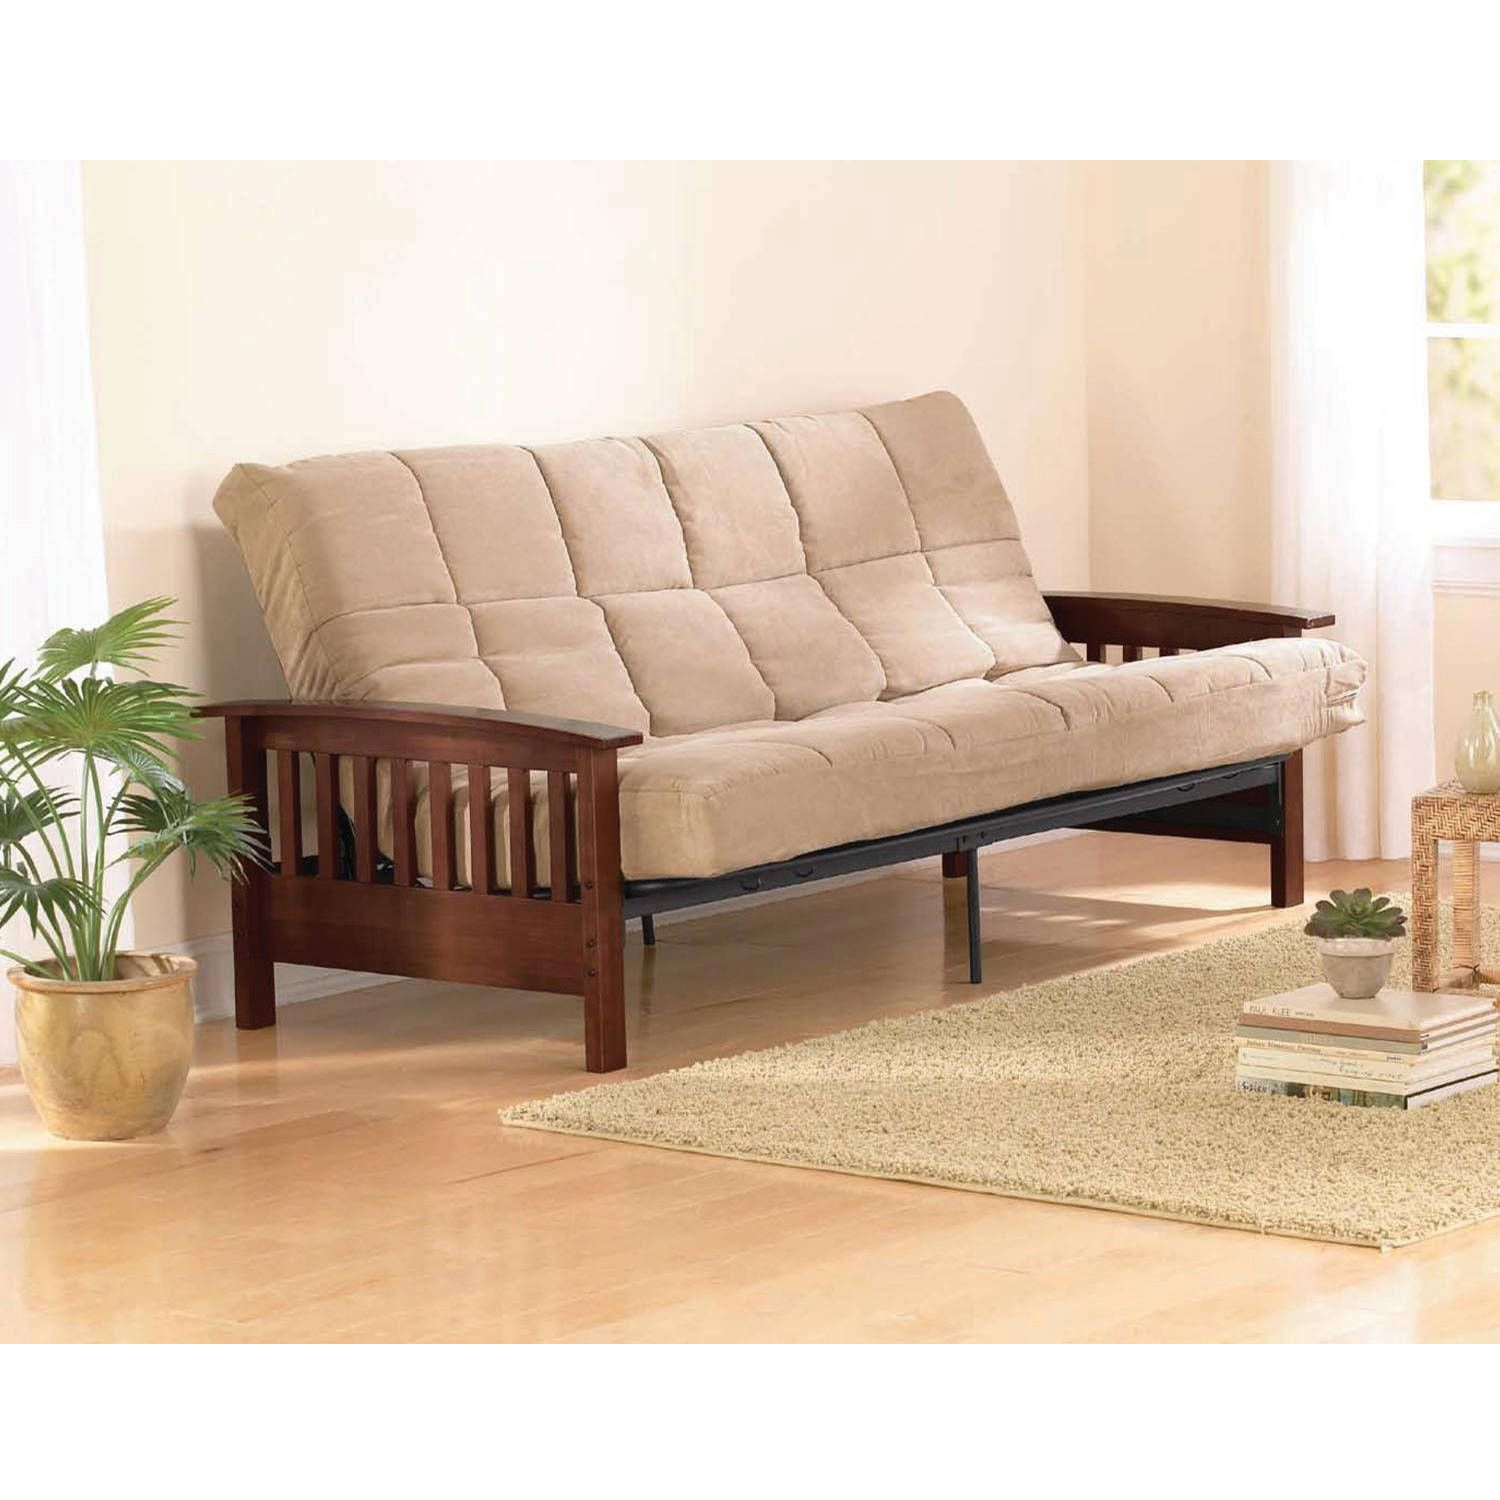 convertible microfiber furniture home com products dark bed conceptstructuresllc choice wood futons pillow sofa best futon